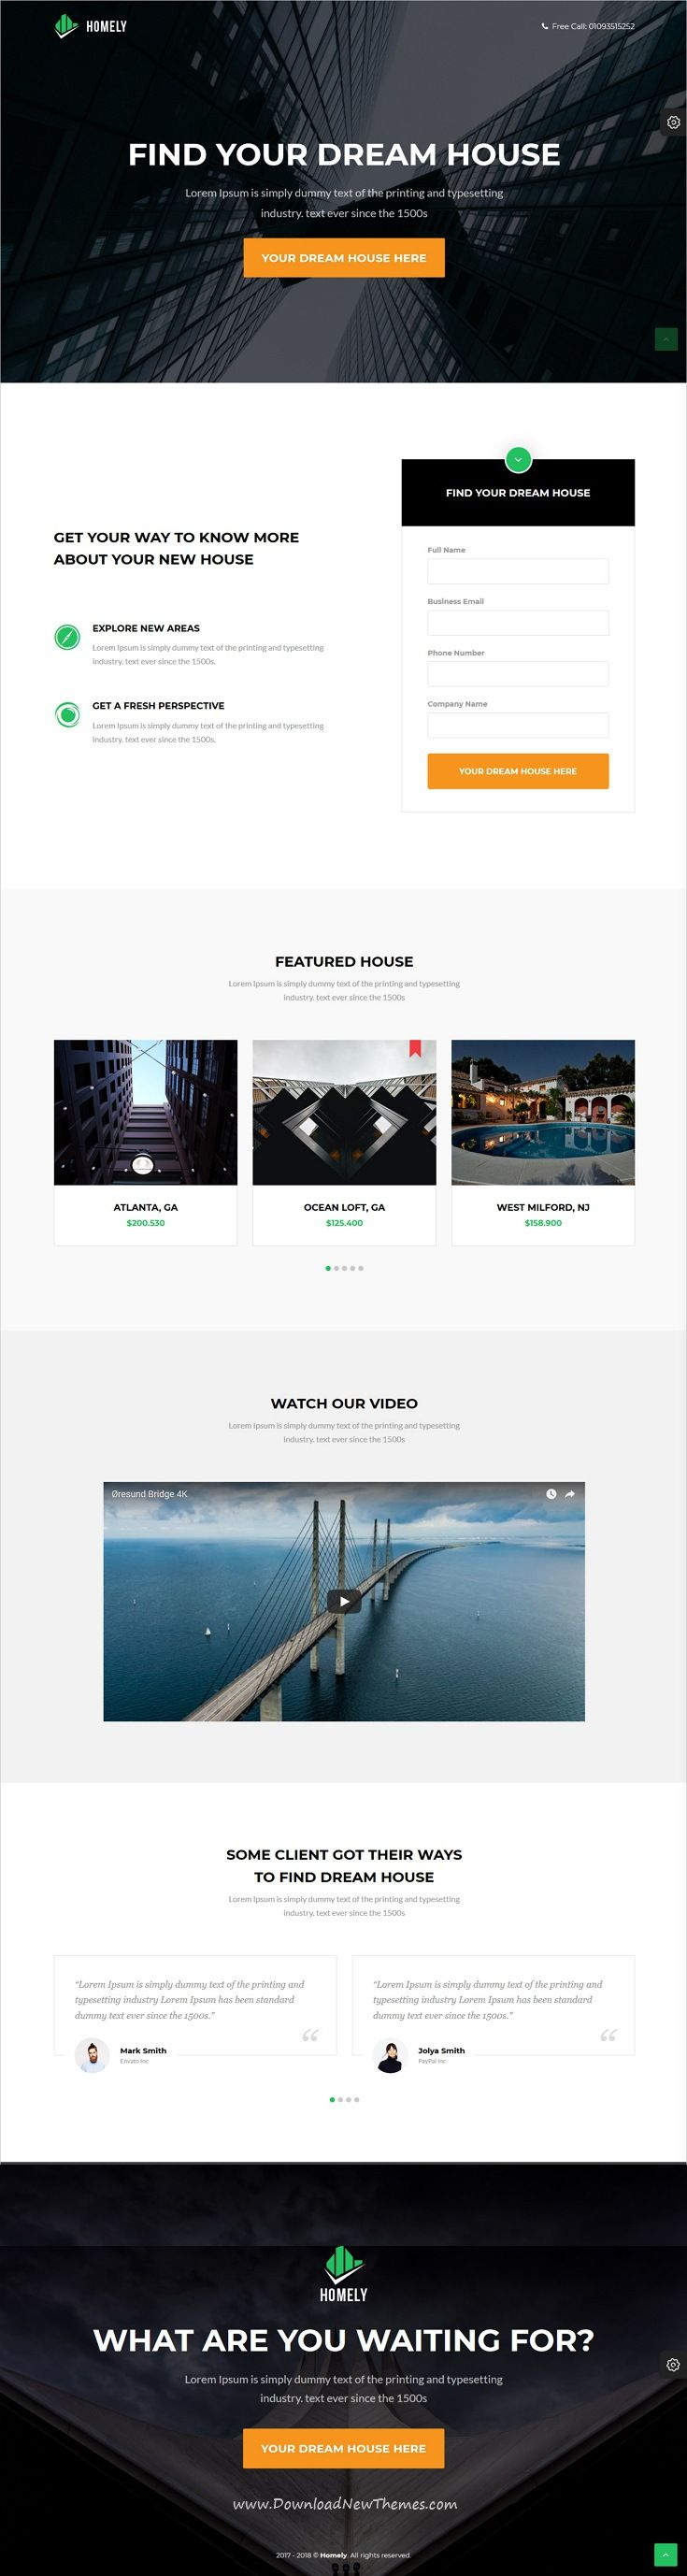 Homely - Real Estate Landing Page | Template, Ui ux and Layout site